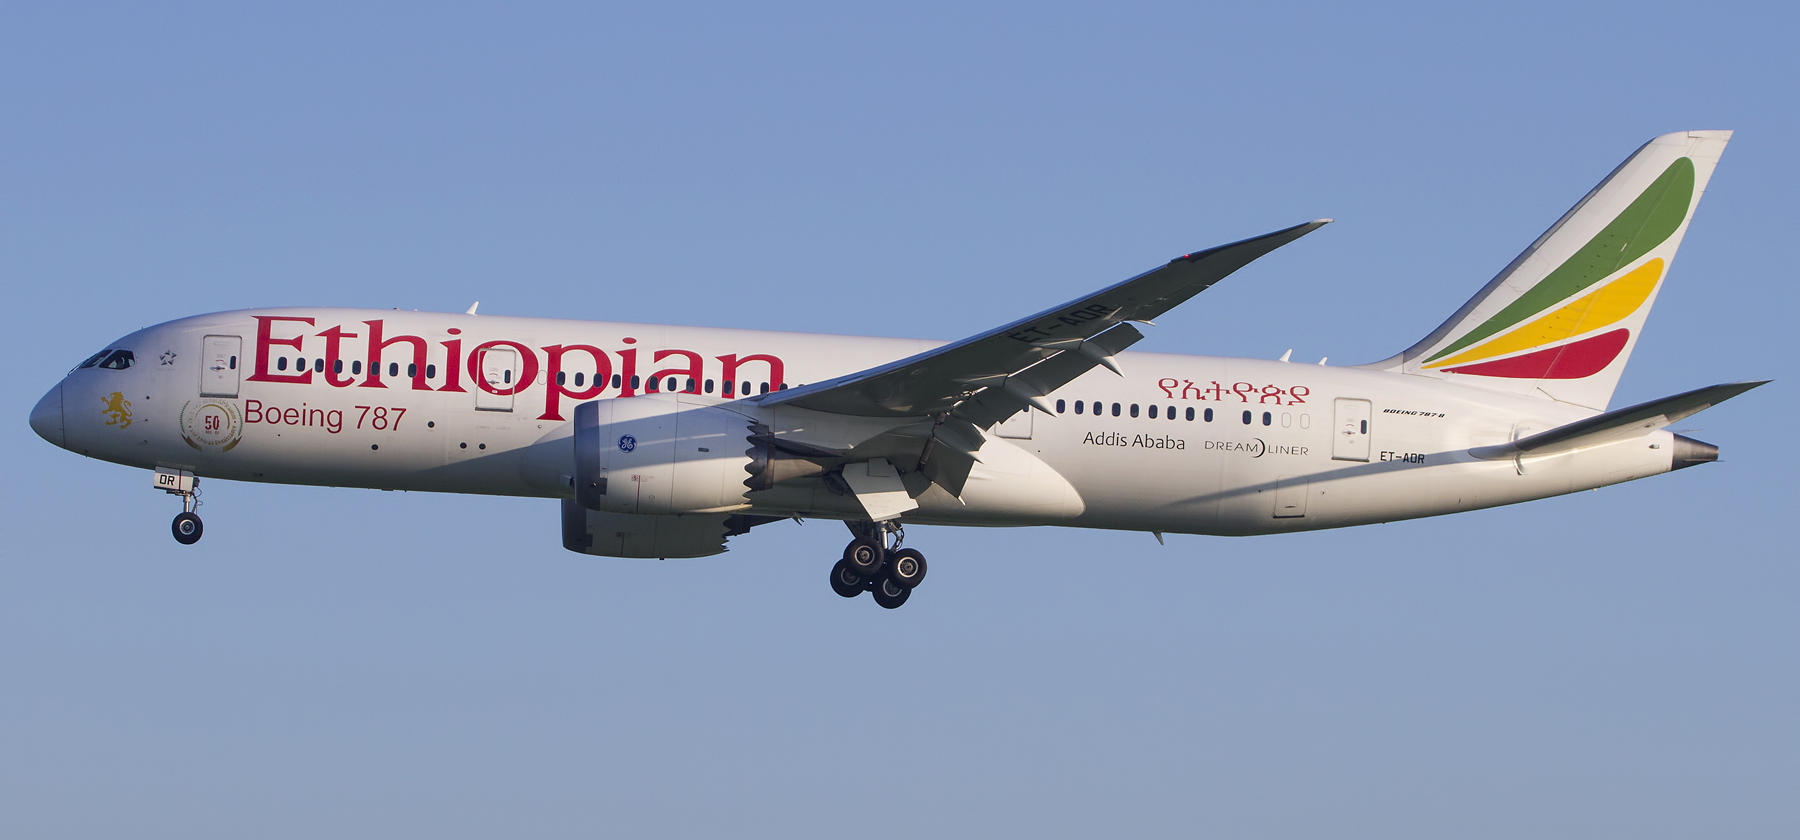 As Governments lift lockdown measures, Ethiopian Airlines announces  resumption of regular service - Aviation24.be